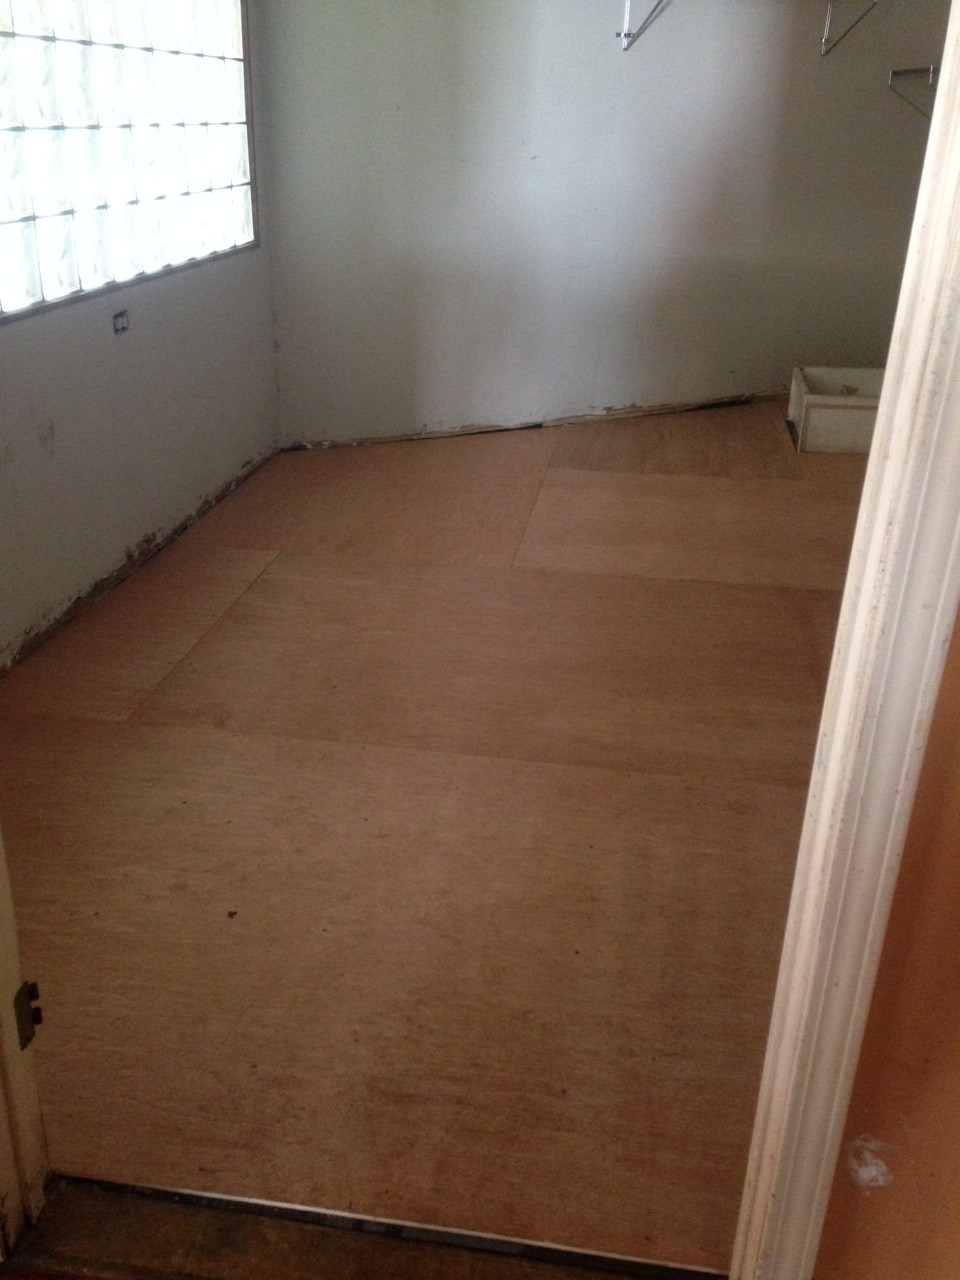 Ready for flooring now!